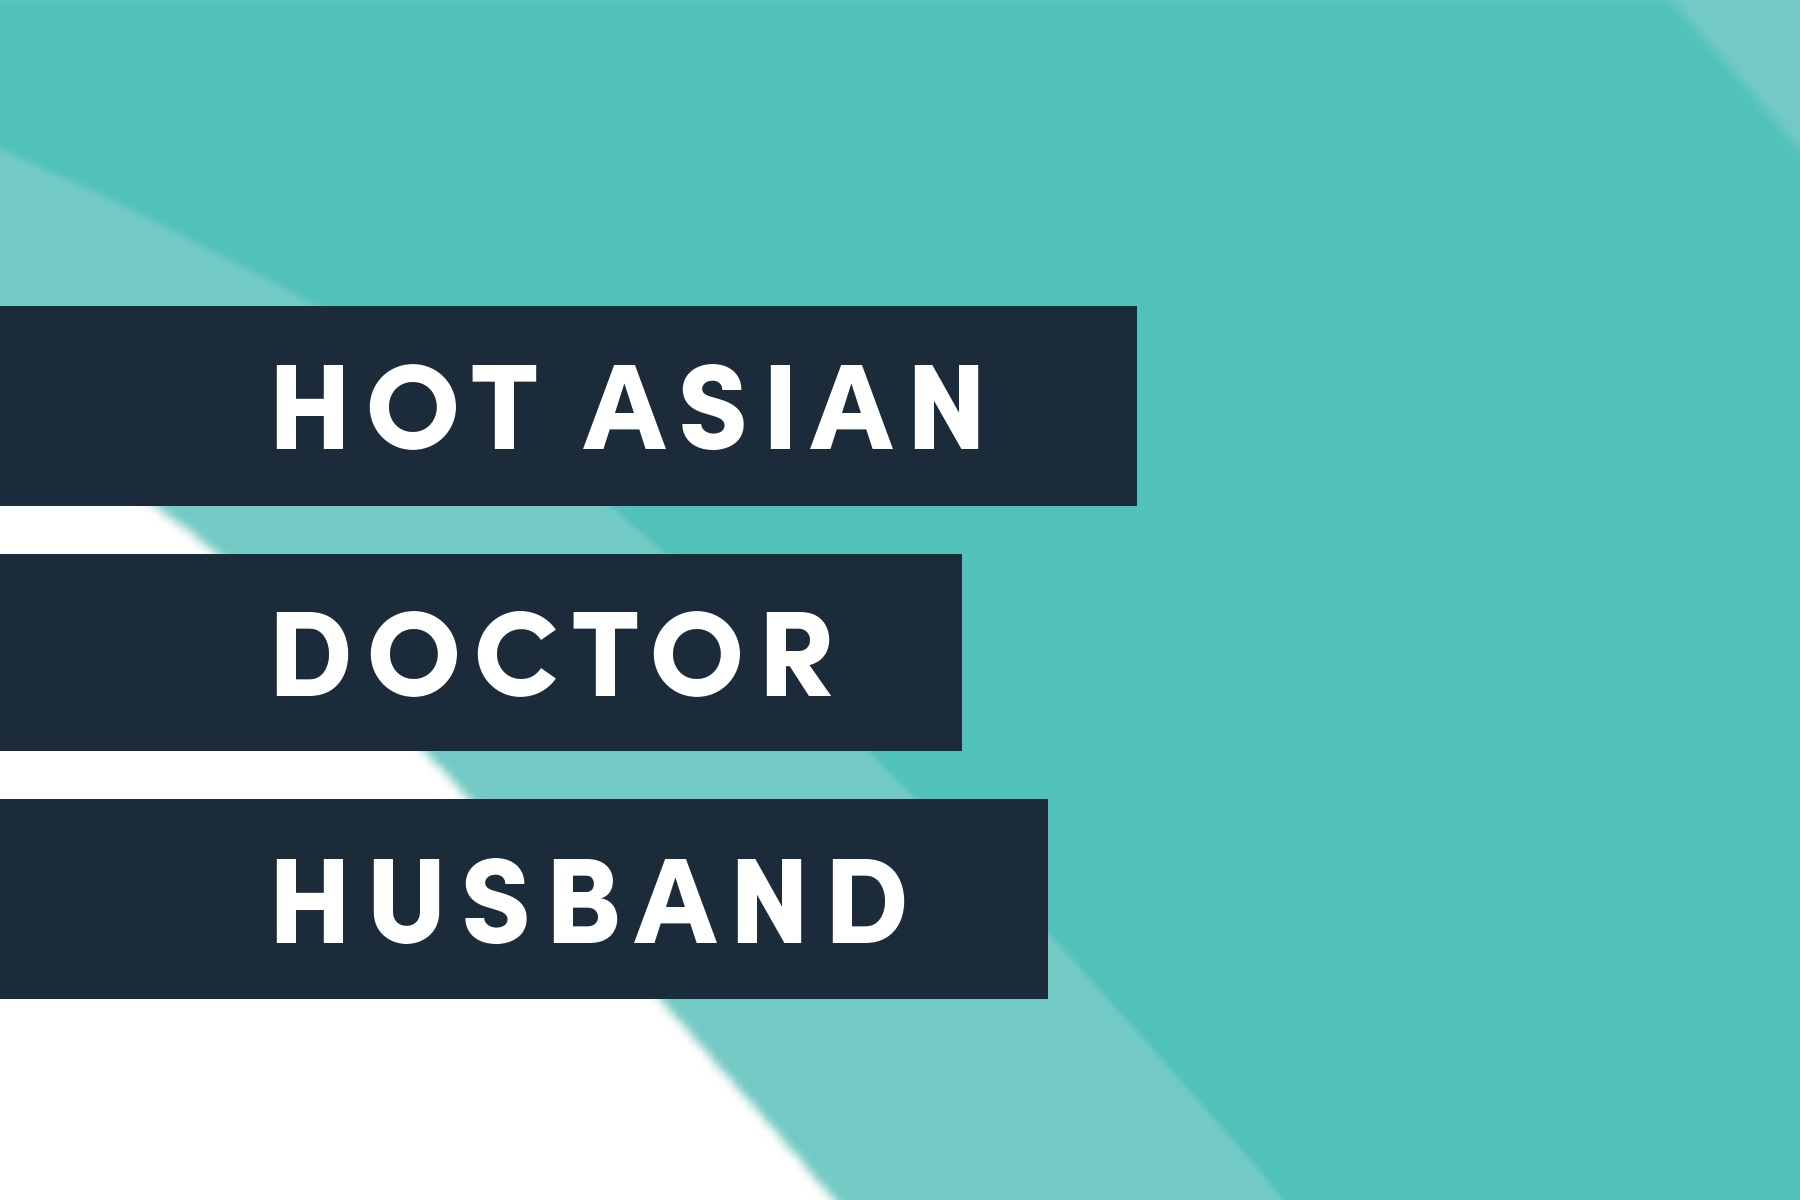 DONATE IN PERSON - At a performance of HOT ASIAN DOCTOR HUSBAND